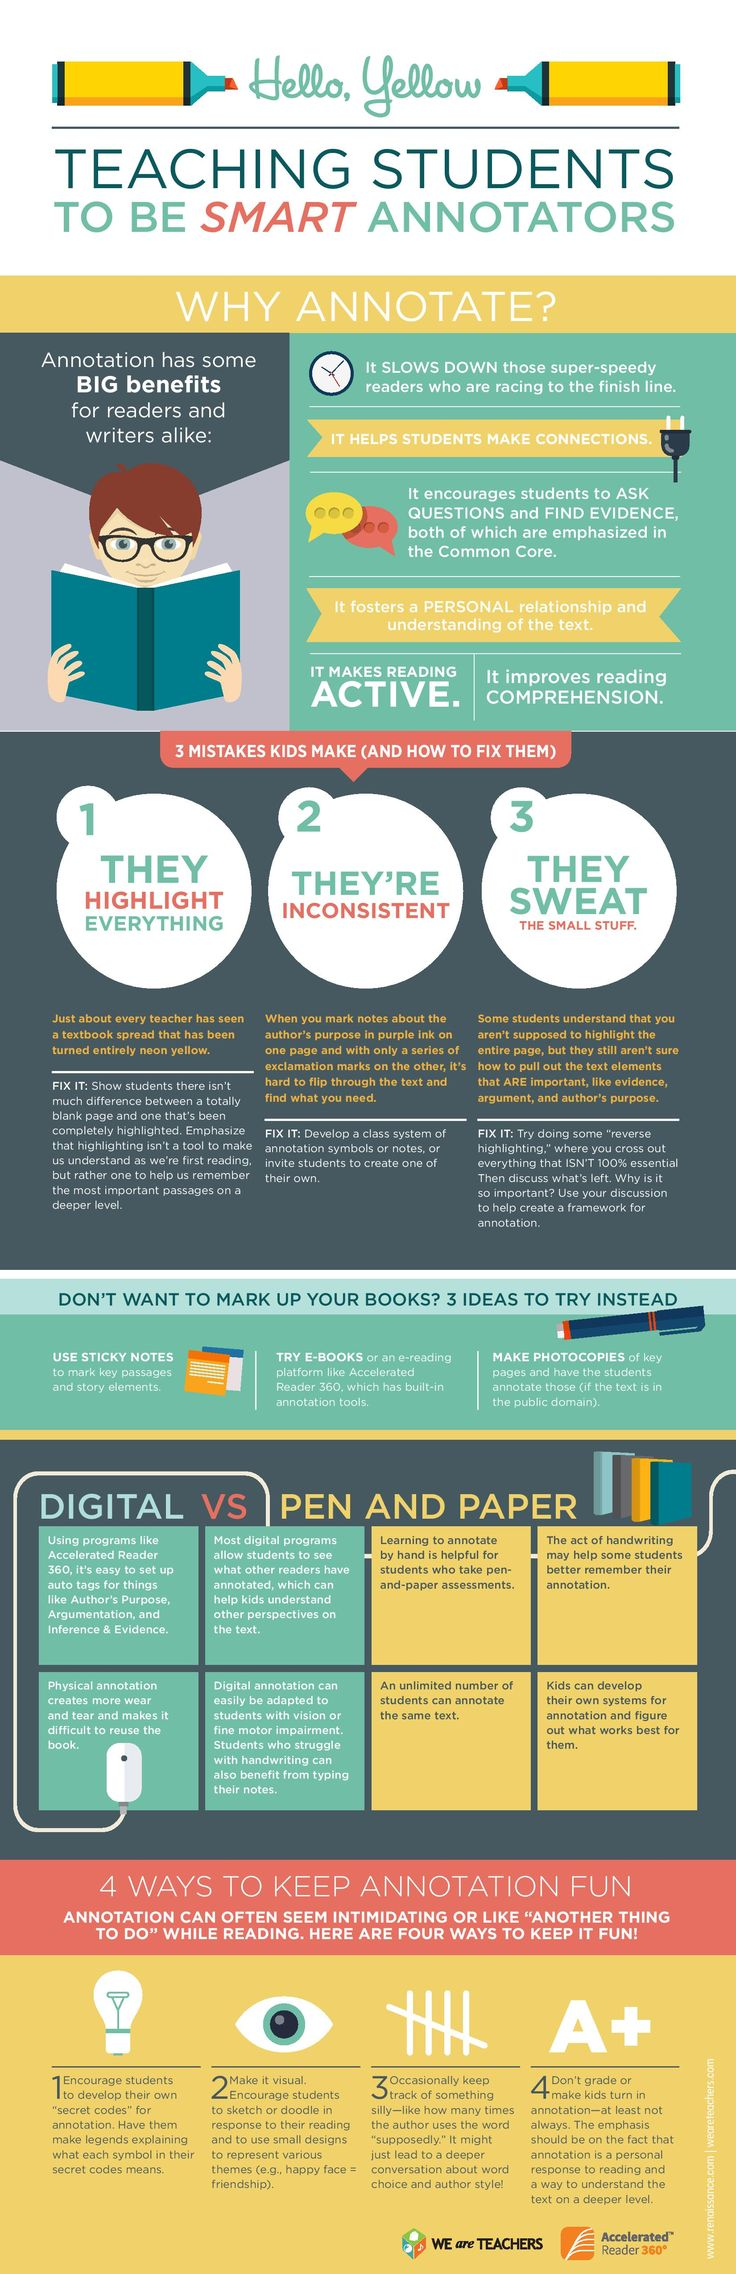 Teaching Students to Be Better Annotators Infographic - http://elearninginfographics.com/teaching-students-better-annotators-infographic/